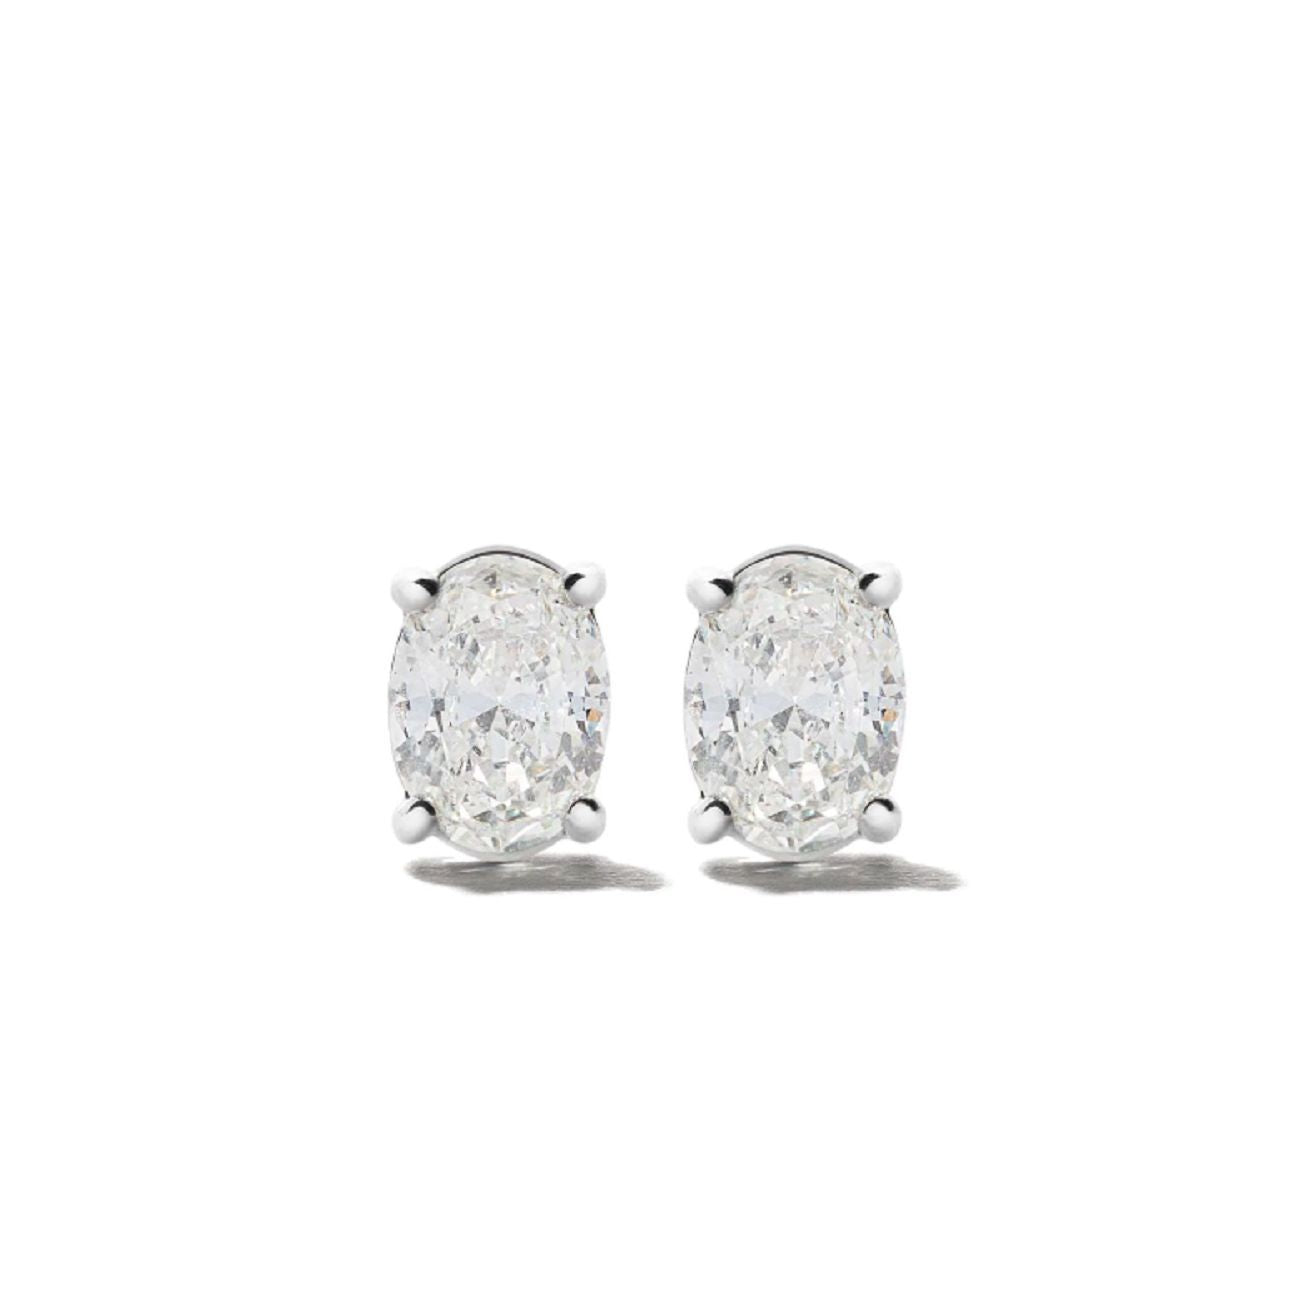 mye-oval-diamond-stud-earrings-in-18k-white-gold